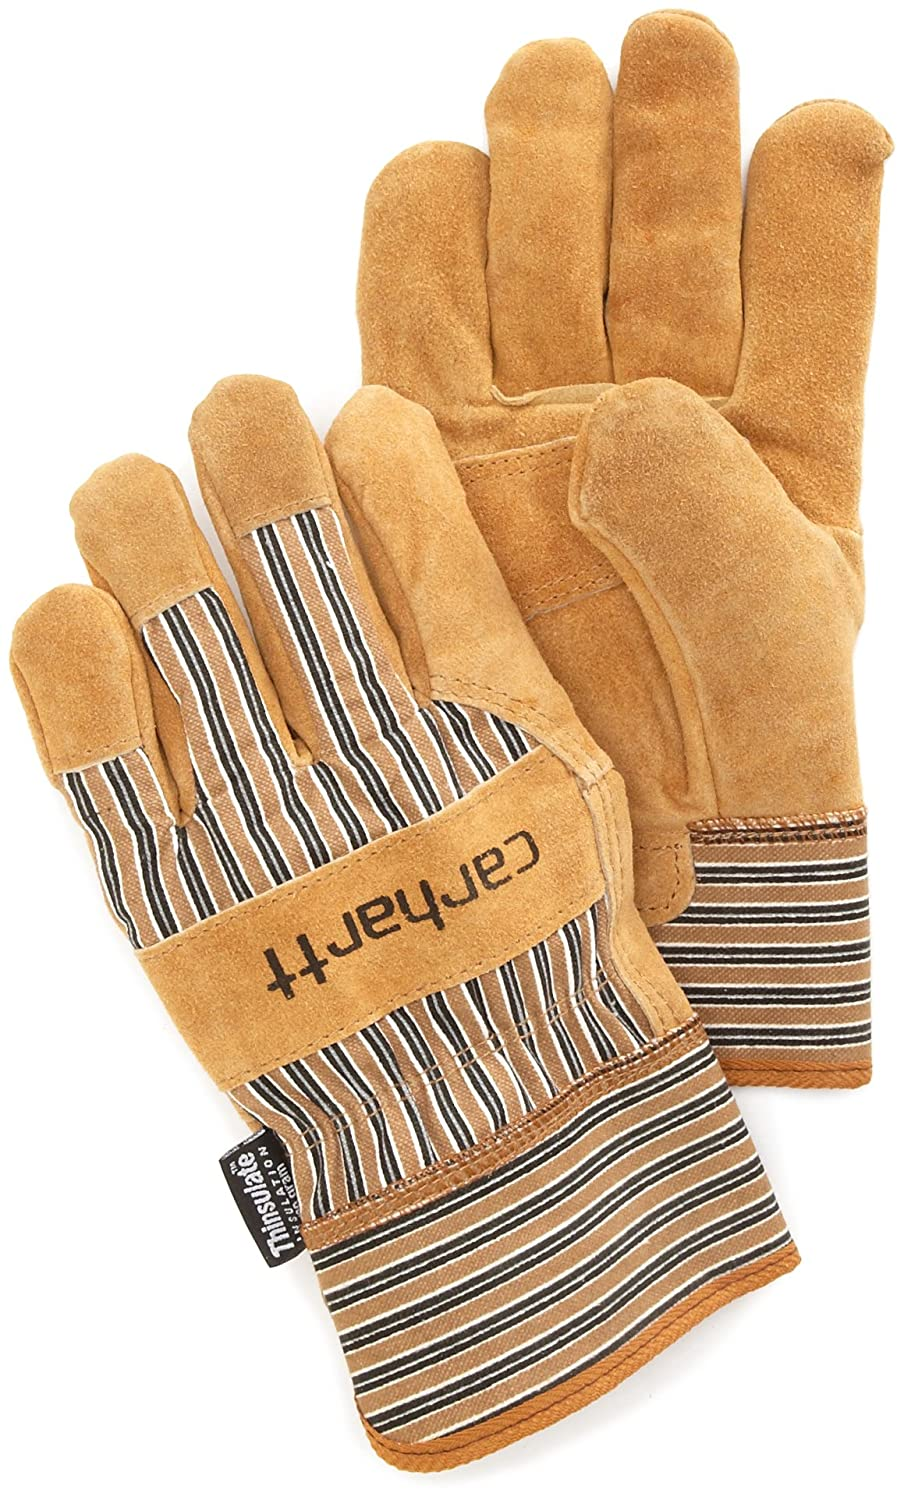 Carhartt Men's Insulated Suede Work Glove with Safety Cuff, Brown, XX-Large A515